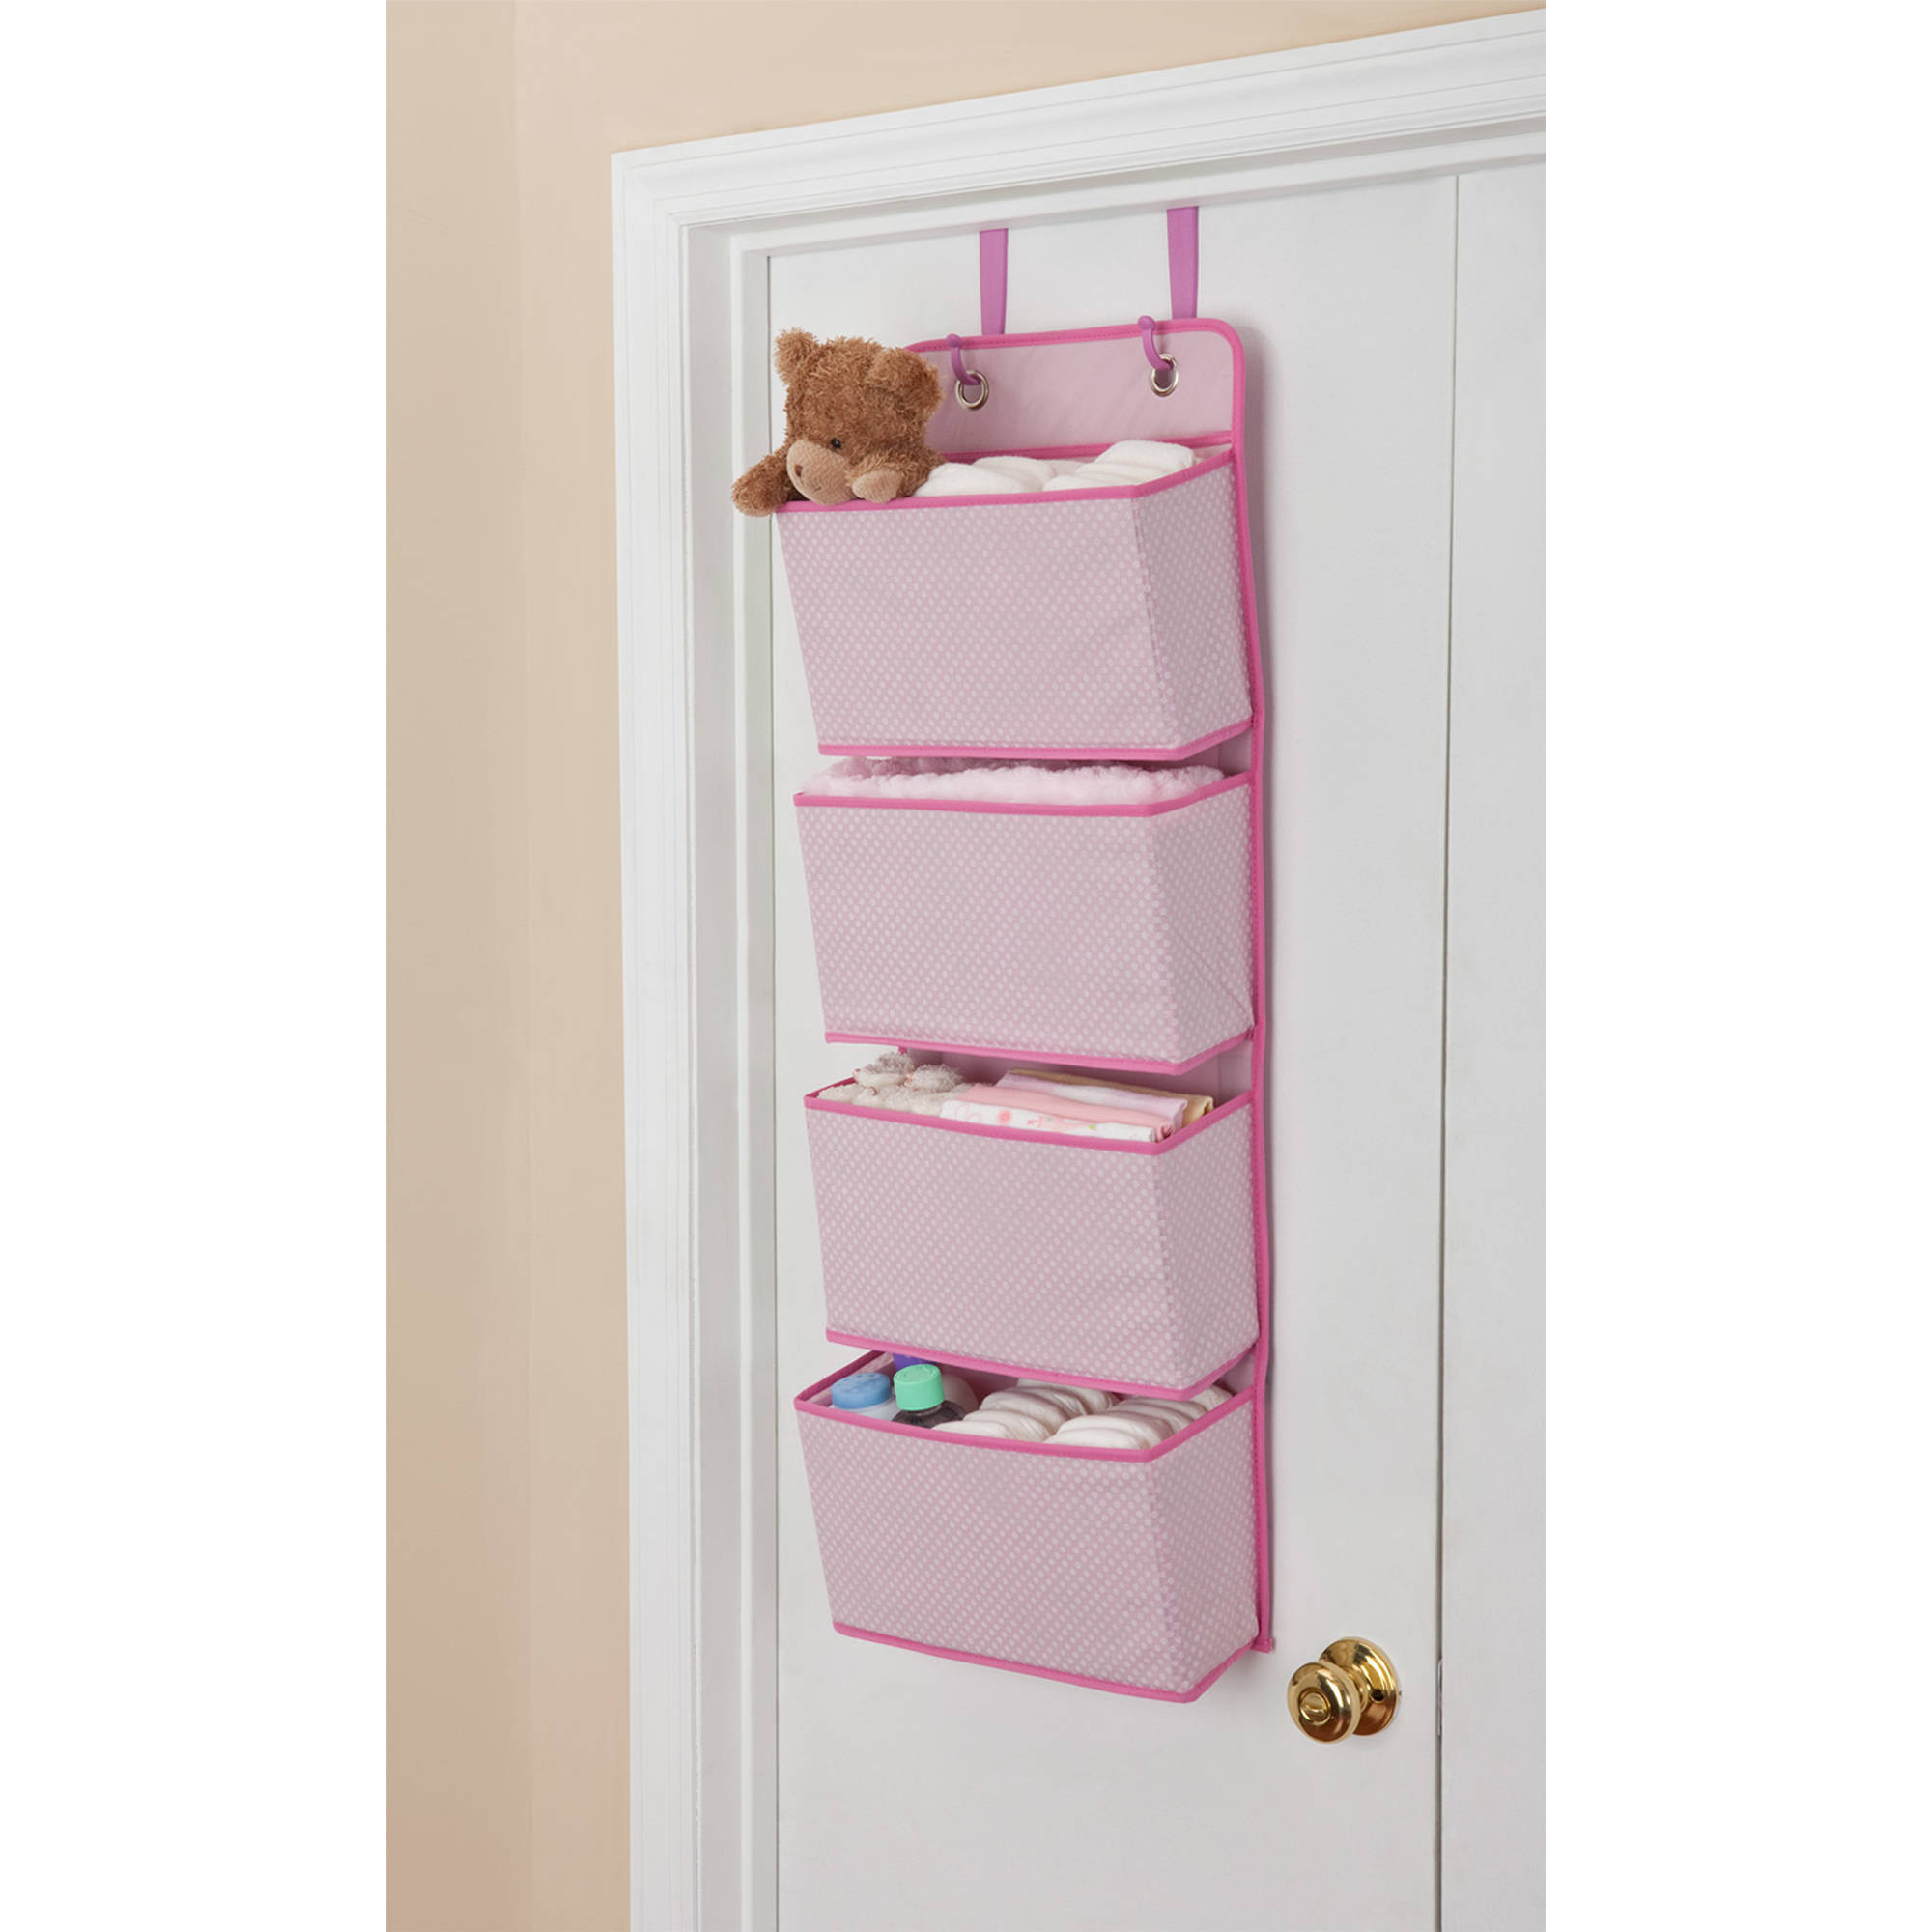 The Days of the Week Kids Hanging Closet Organizer helps you and your child prepare for the upcoming week. With six large compartments to hold clothes, games, toys, and more, the hanging closet organizer will help you and your child can plan ahead for.